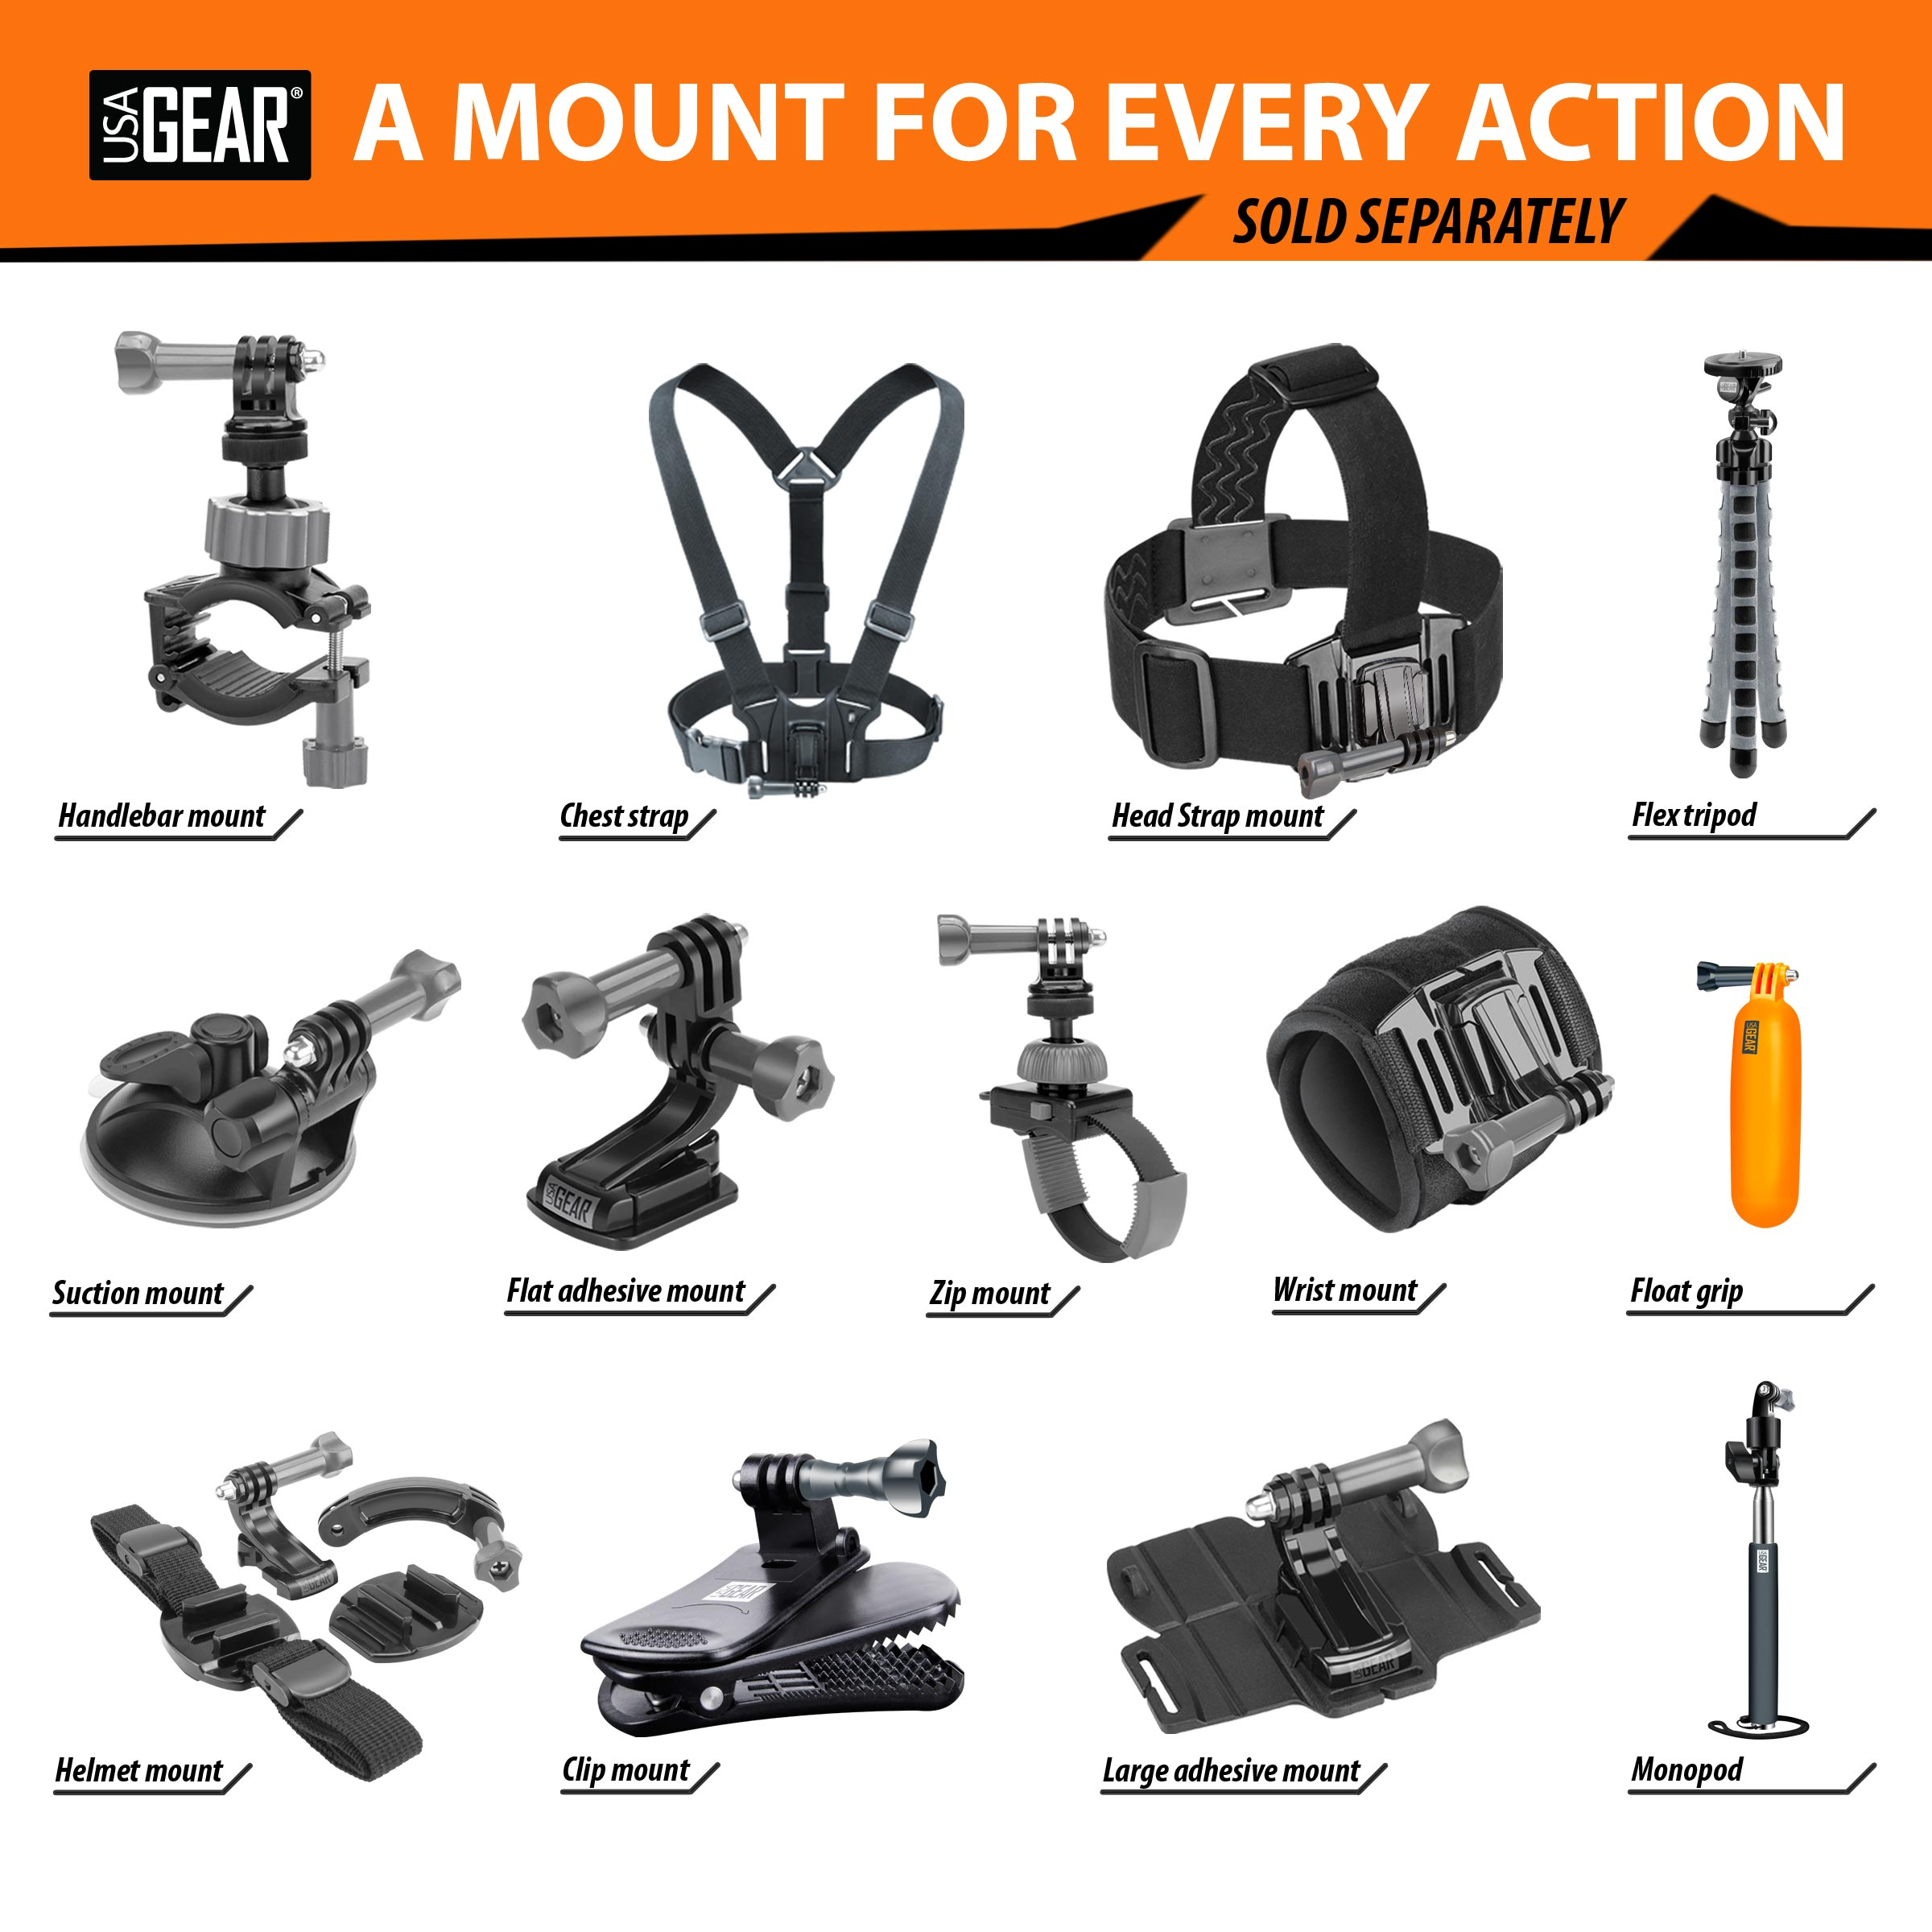 Tough Camera Chest Strap Mount with J Hook and Tripod Adapter by USA Gear - Works With Canon PowerShot D30 , Nikon Coolpix AW130 , Olympus TG-4 & More 8